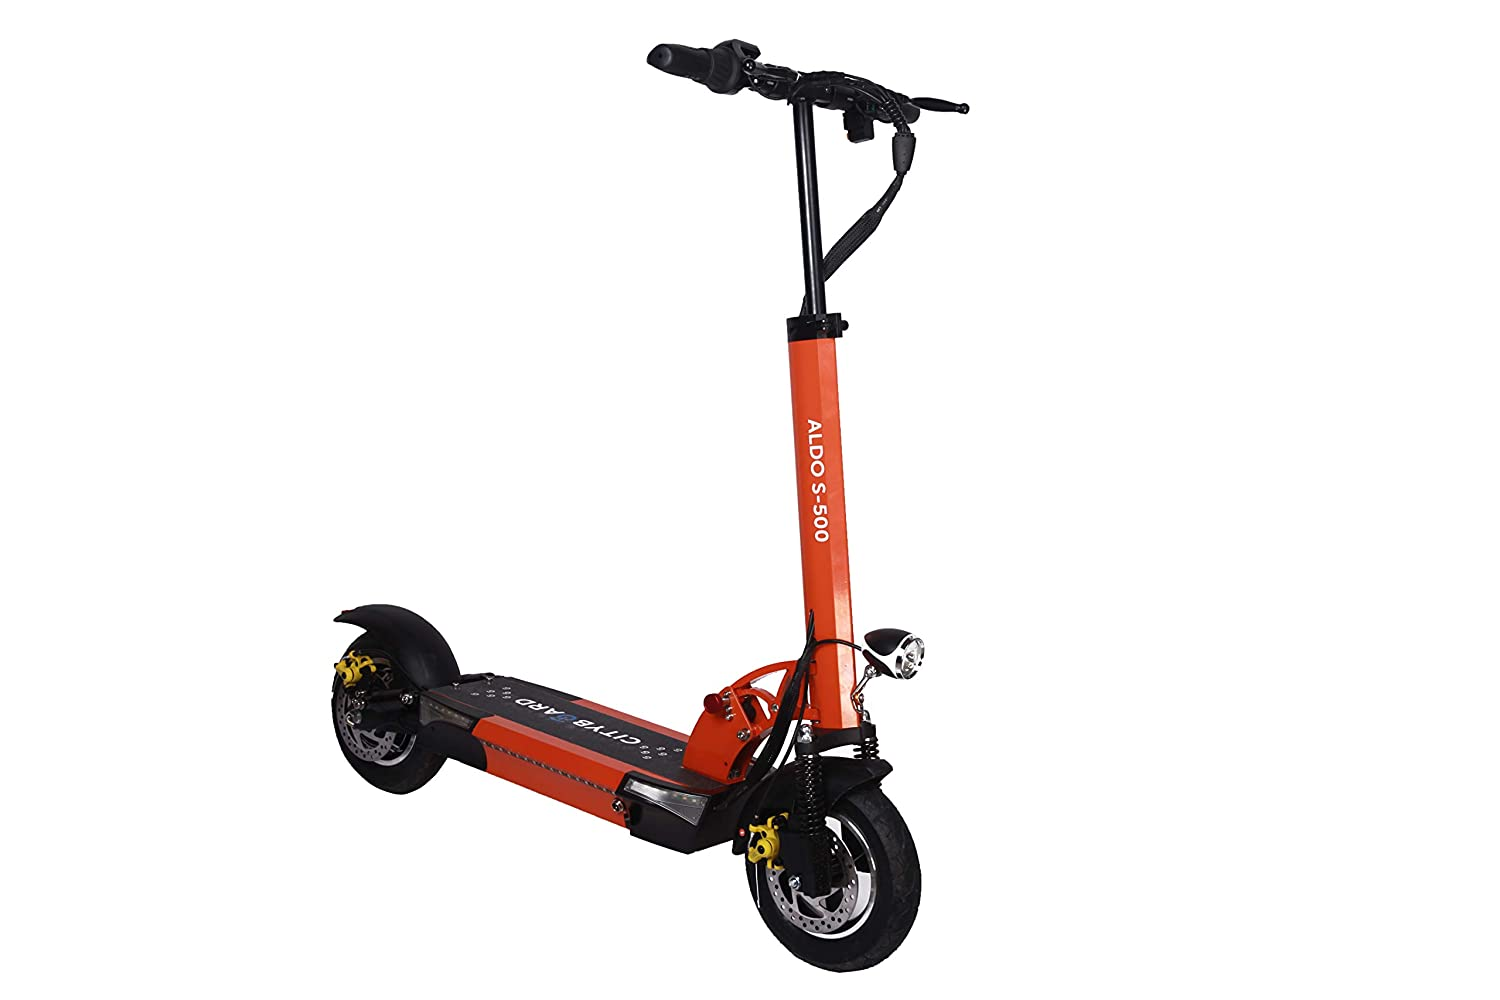 Cityboard Aldo S500 Patinete Electrico, Juventud Unisex, Orange Country, Adulto